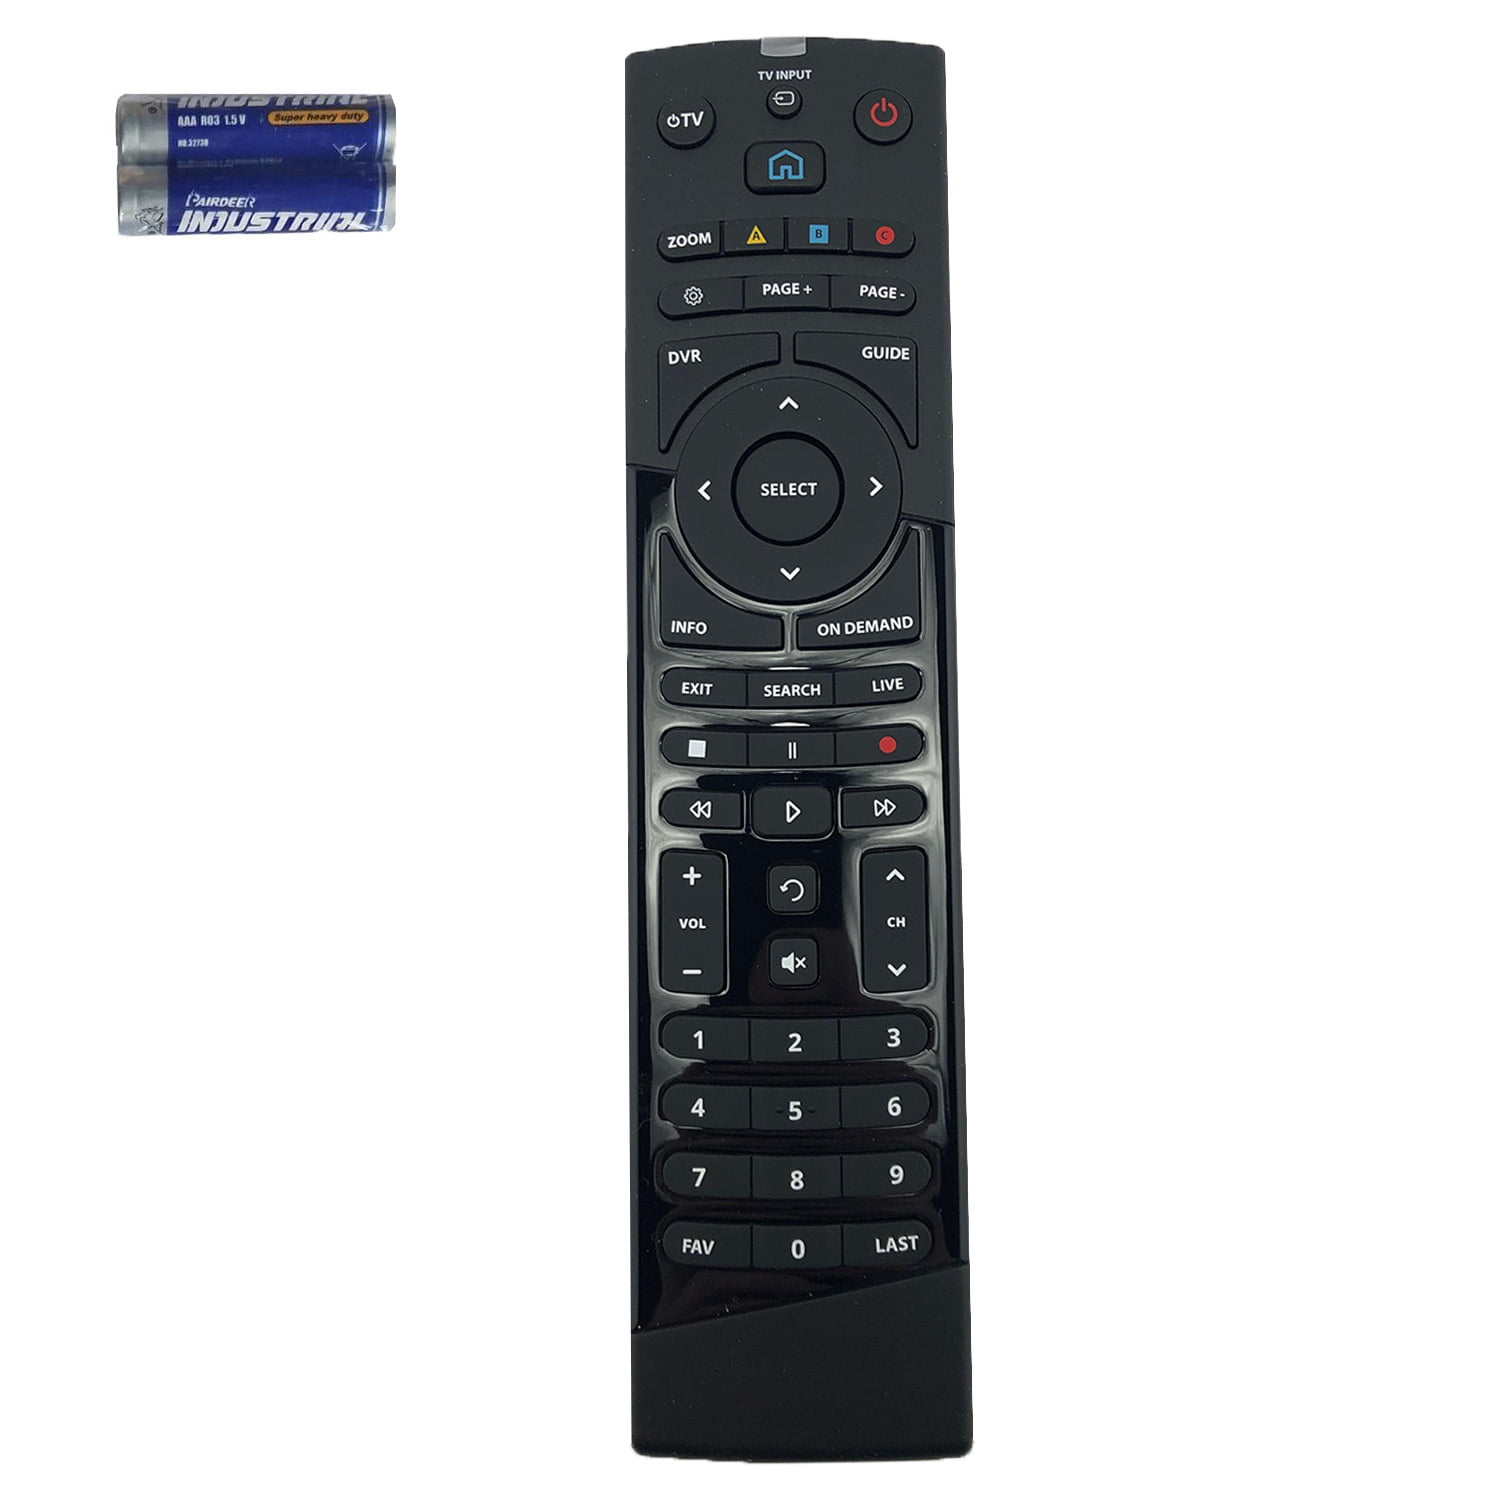 BRAND NEW OPTIMUM CABLEVISION REMOTE CONTROL DVR W